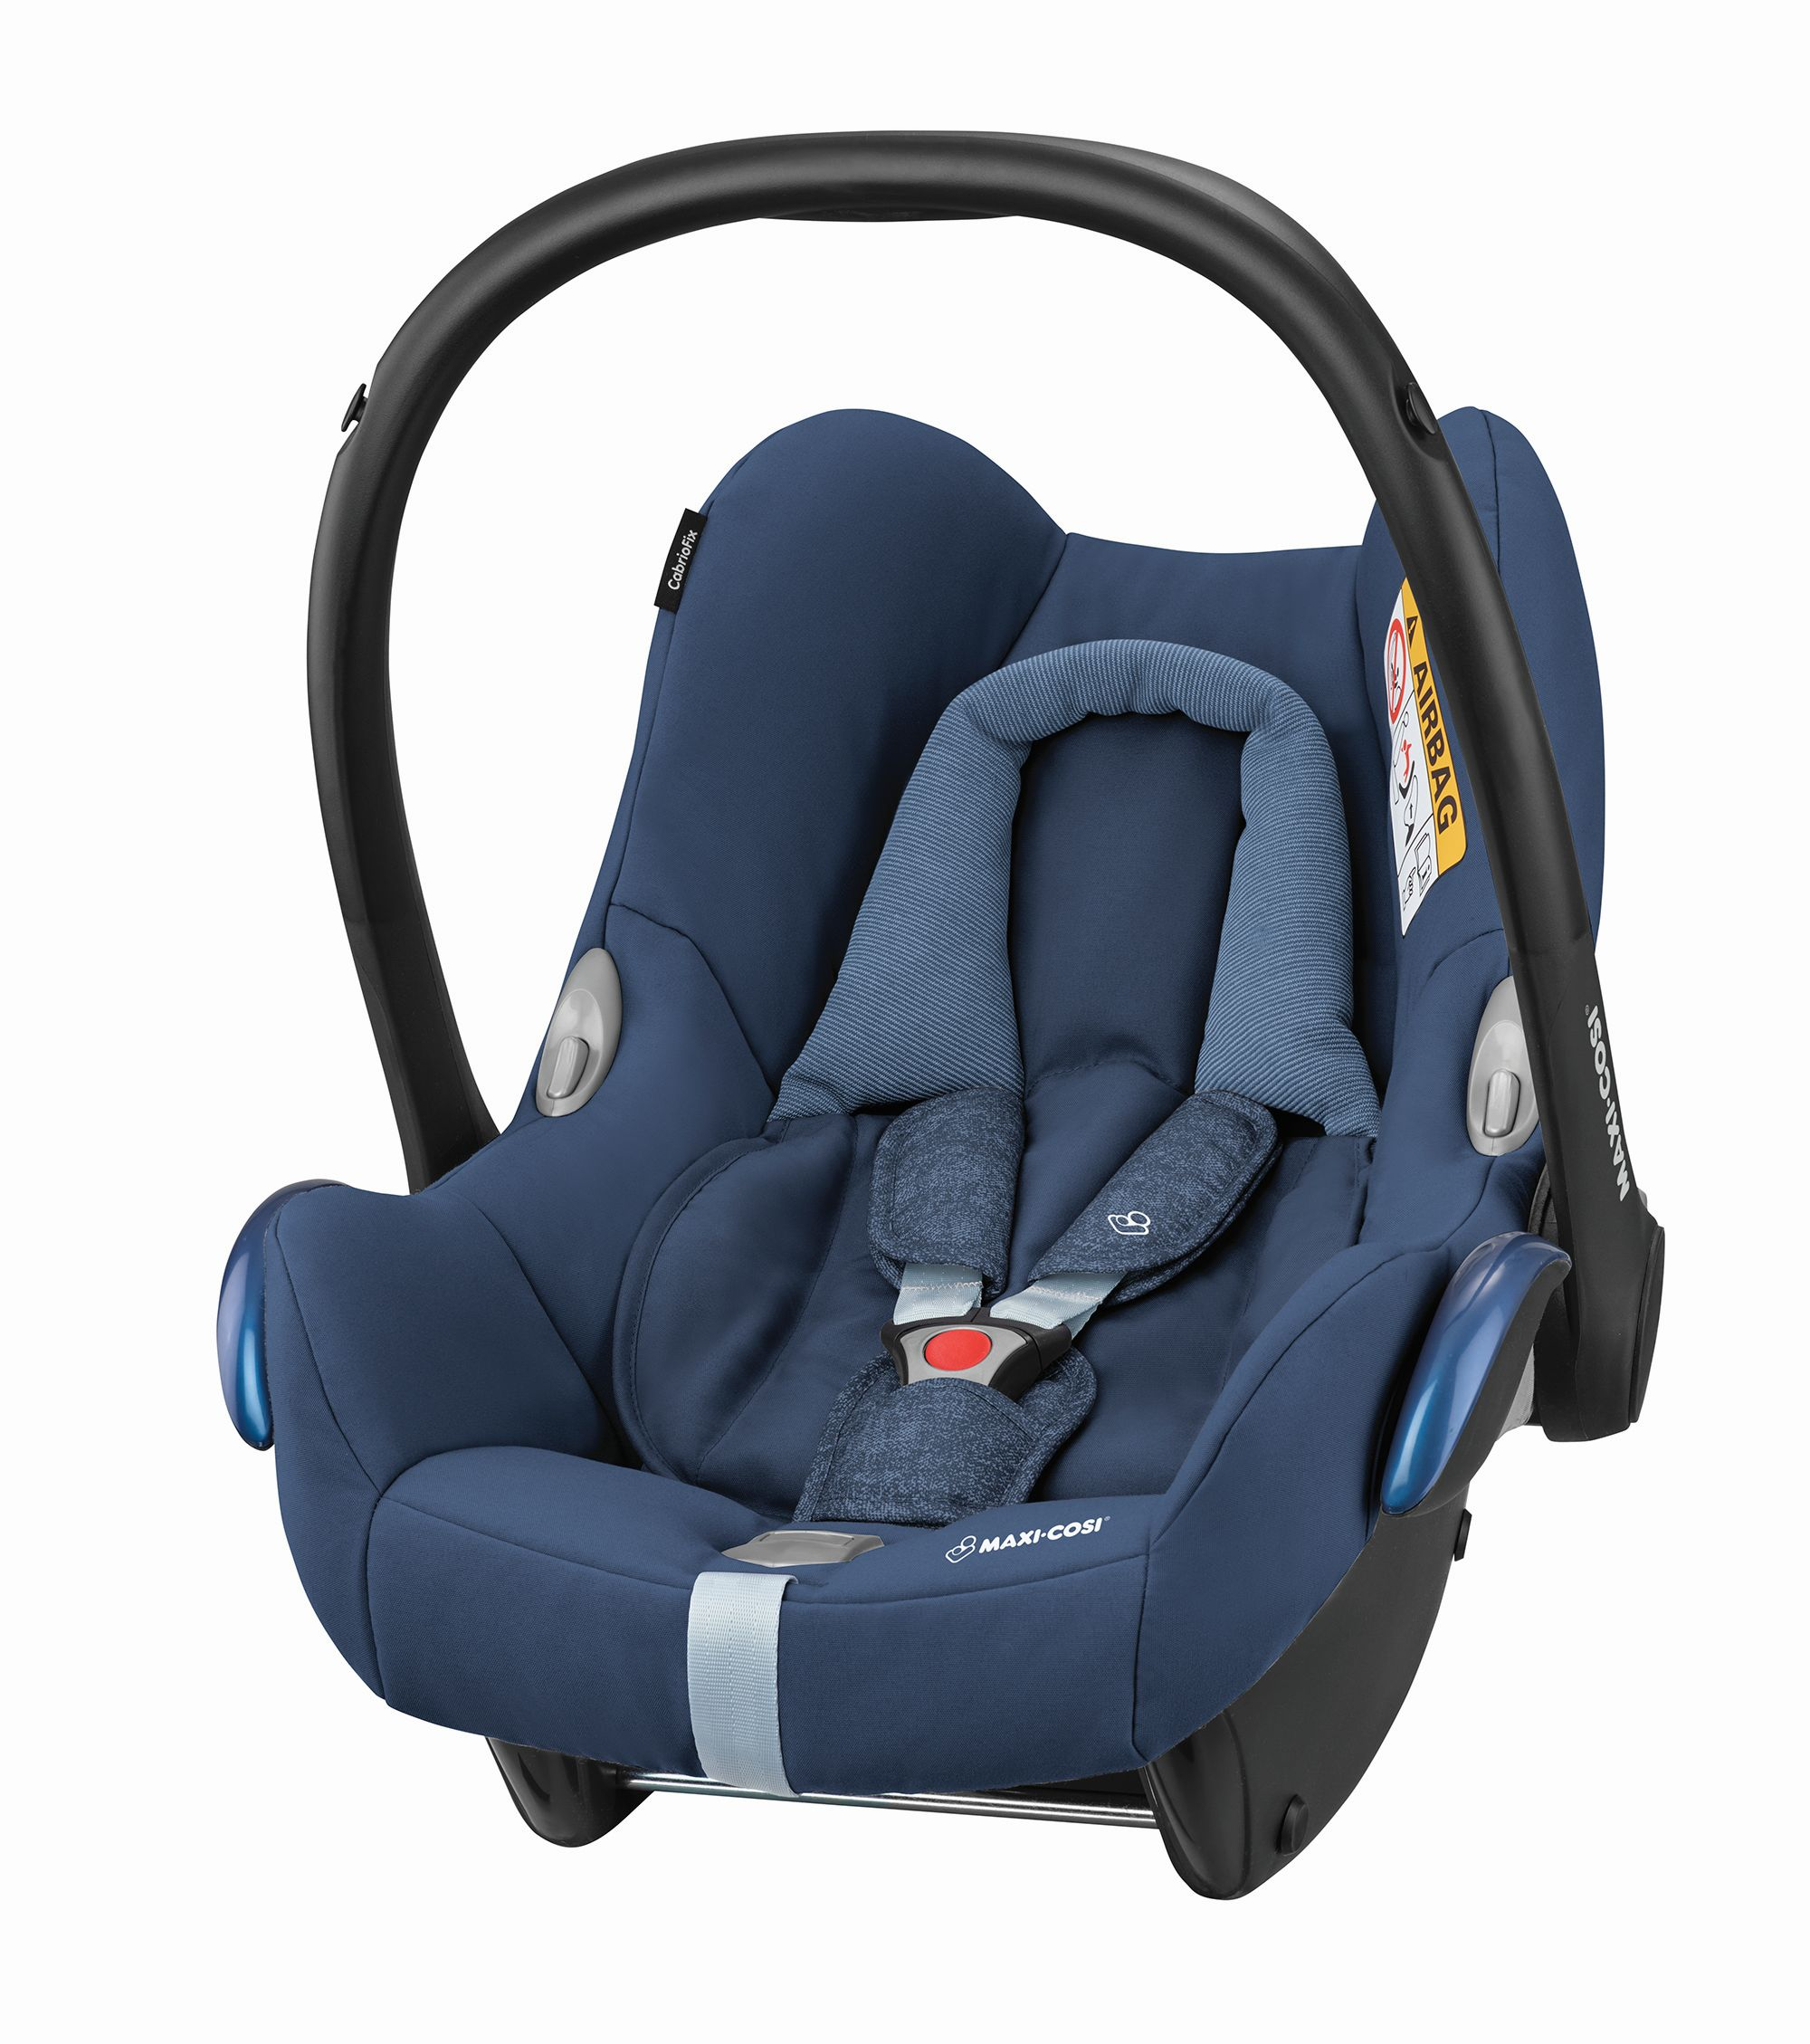 maxi cosi infant car seat cabriofix 2018 nomad blue buy. Black Bedroom Furniture Sets. Home Design Ideas